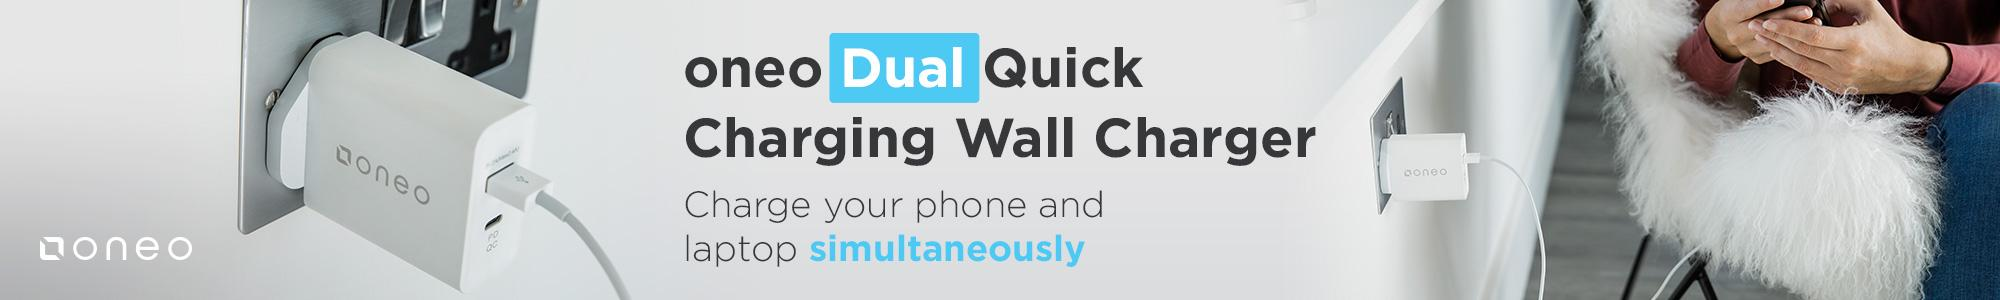 oneo Dual Quick Charging Wall Charger! Charge your phone and laptop simultaneously